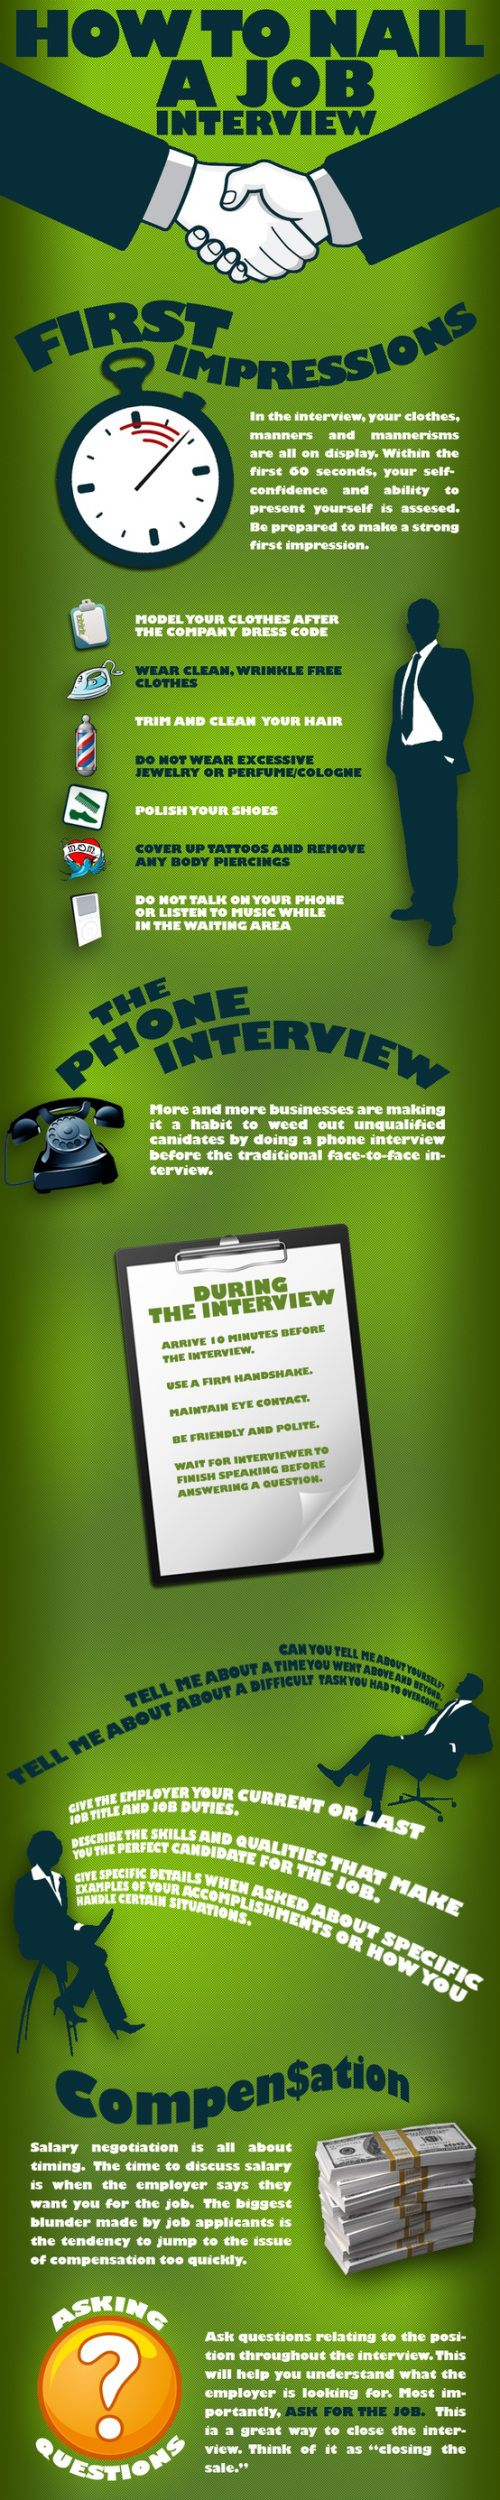 17 best images about interview interview common infographic interviewtips